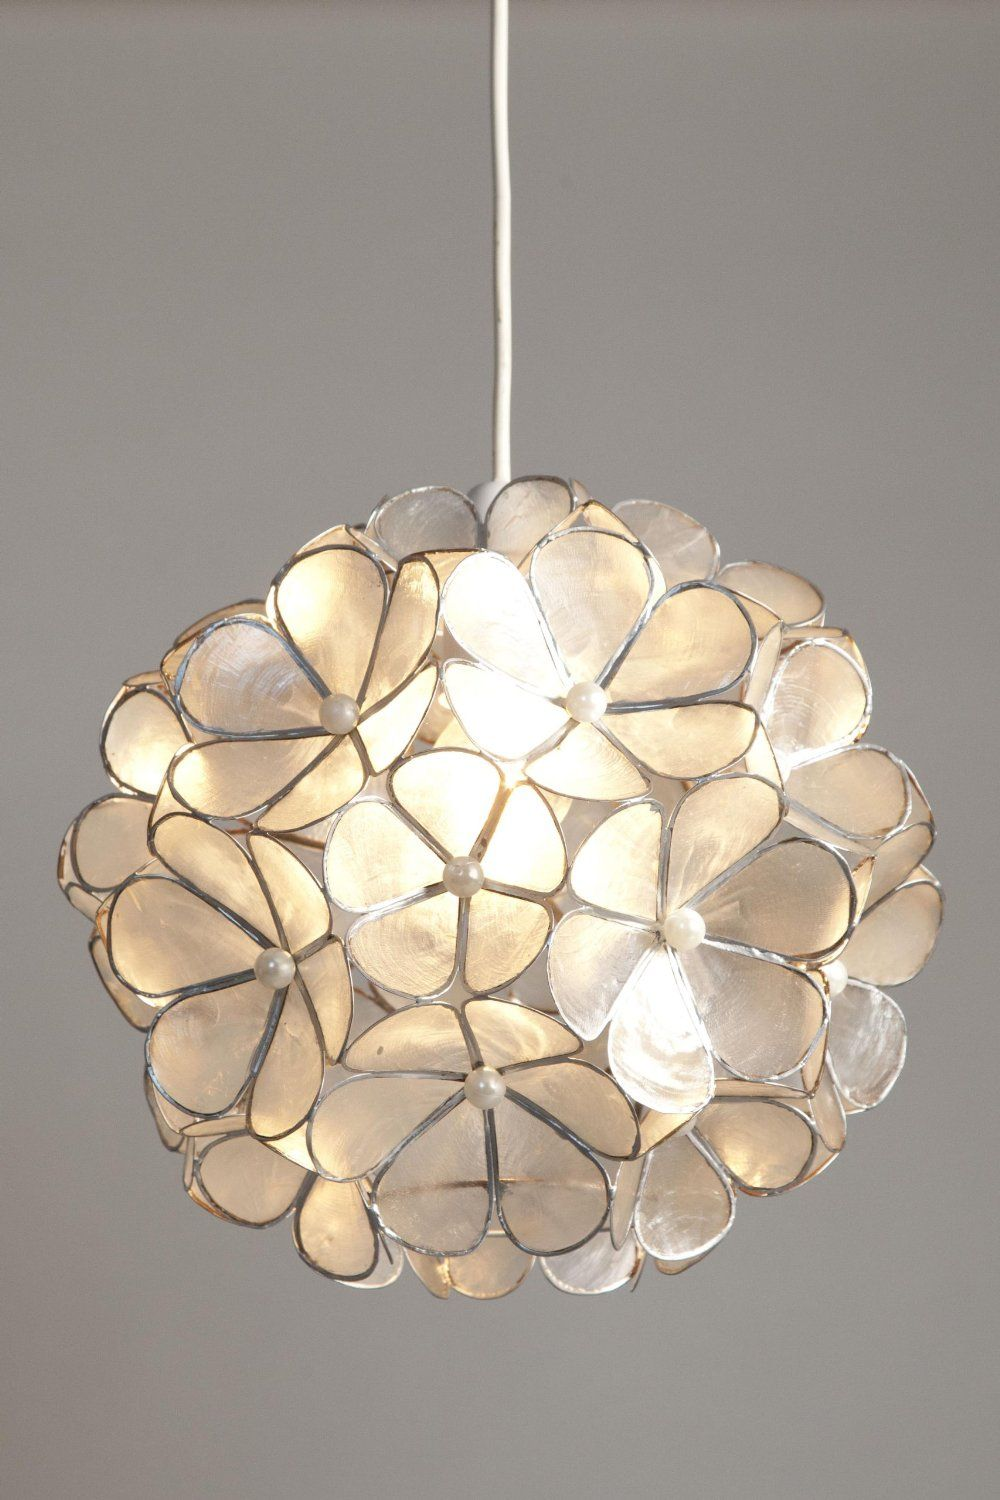 Stylish Natural Capiz Shell Flower Ball Non Electric Ceiling Light     Stylish Natural Capiz Shell Flower Ball Non Electric Ceiling Light Shade  Pendant   White   Silver